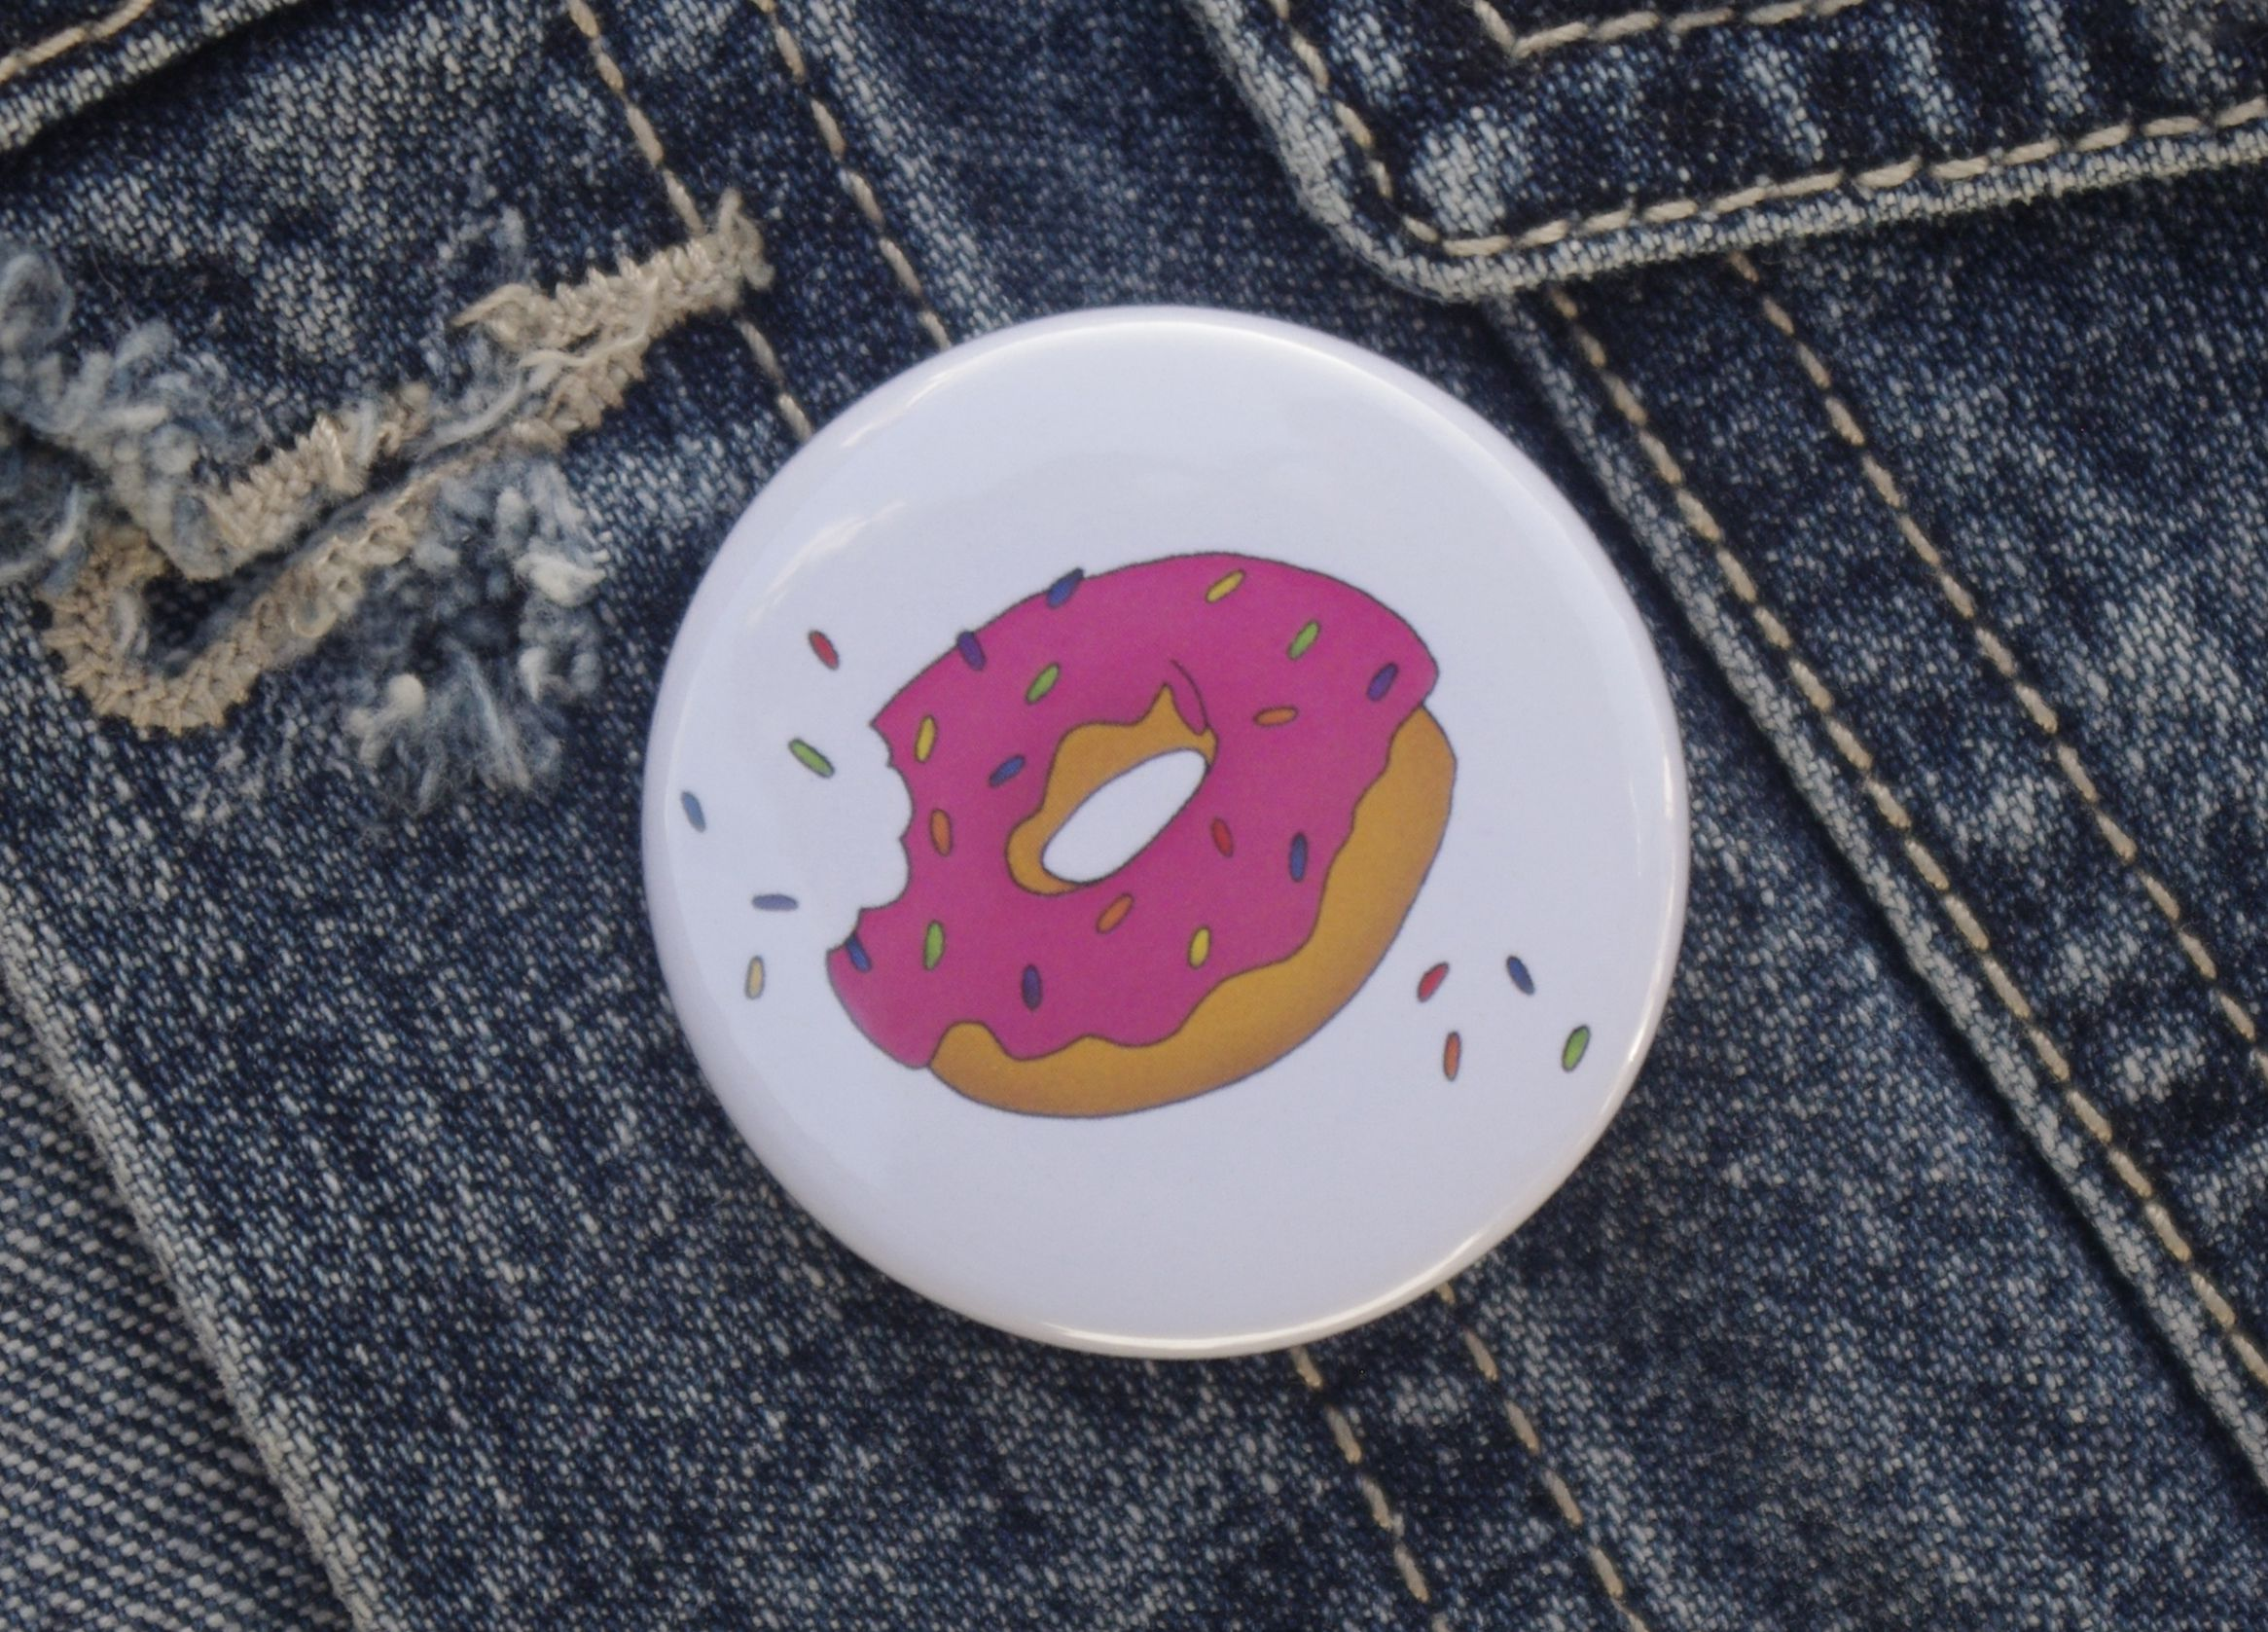 accessories food sweets gift stockingfiller pin gifts sprinkles pinbadge badge doughnut tattoo art